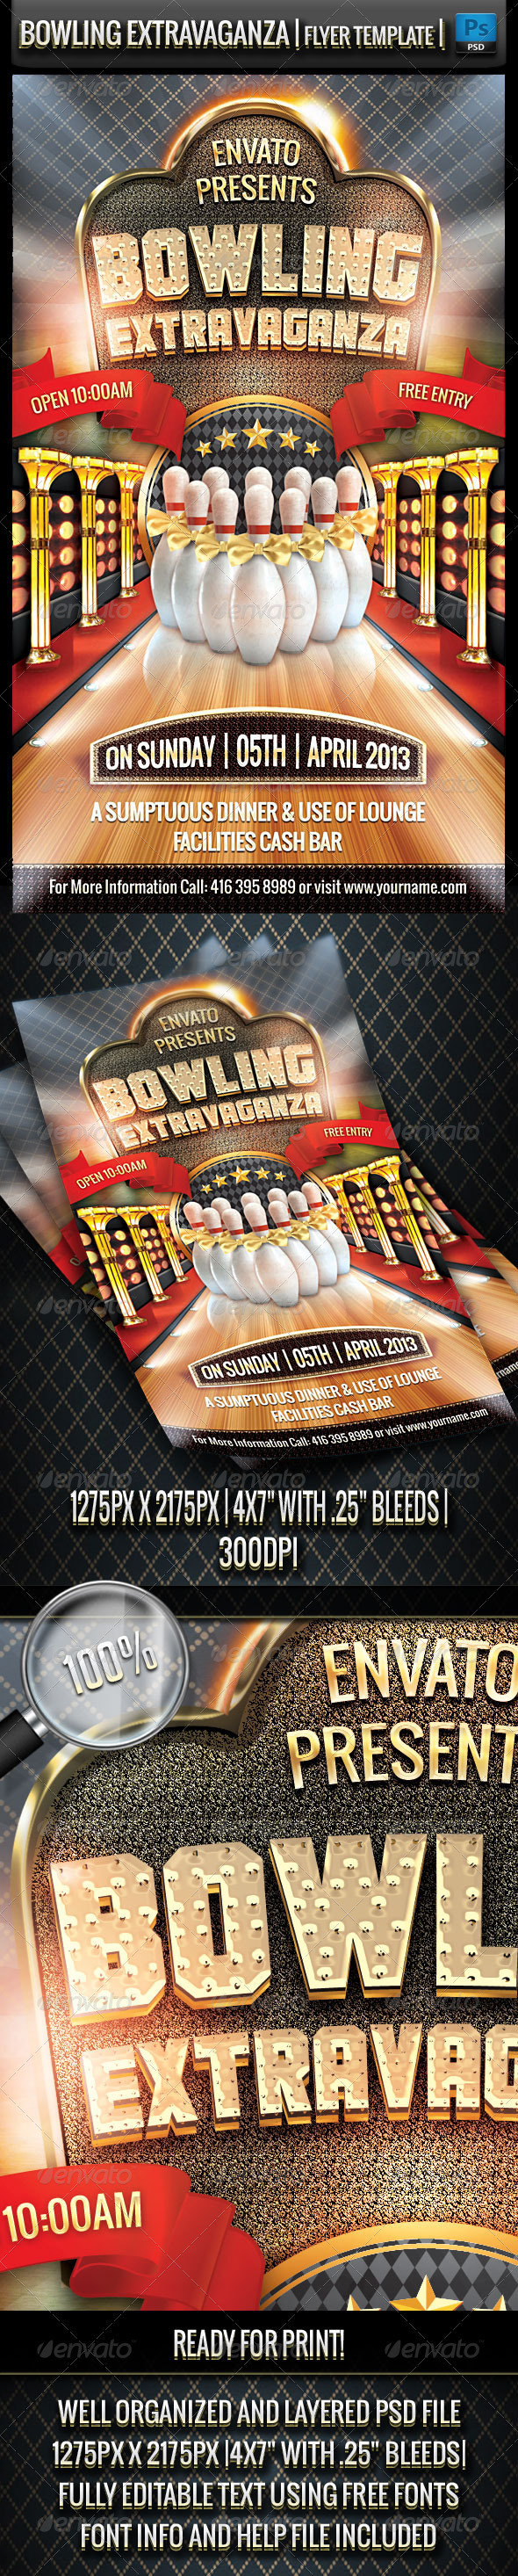 Bowling Extravaganza Flyer Template - Flyers Print Templates